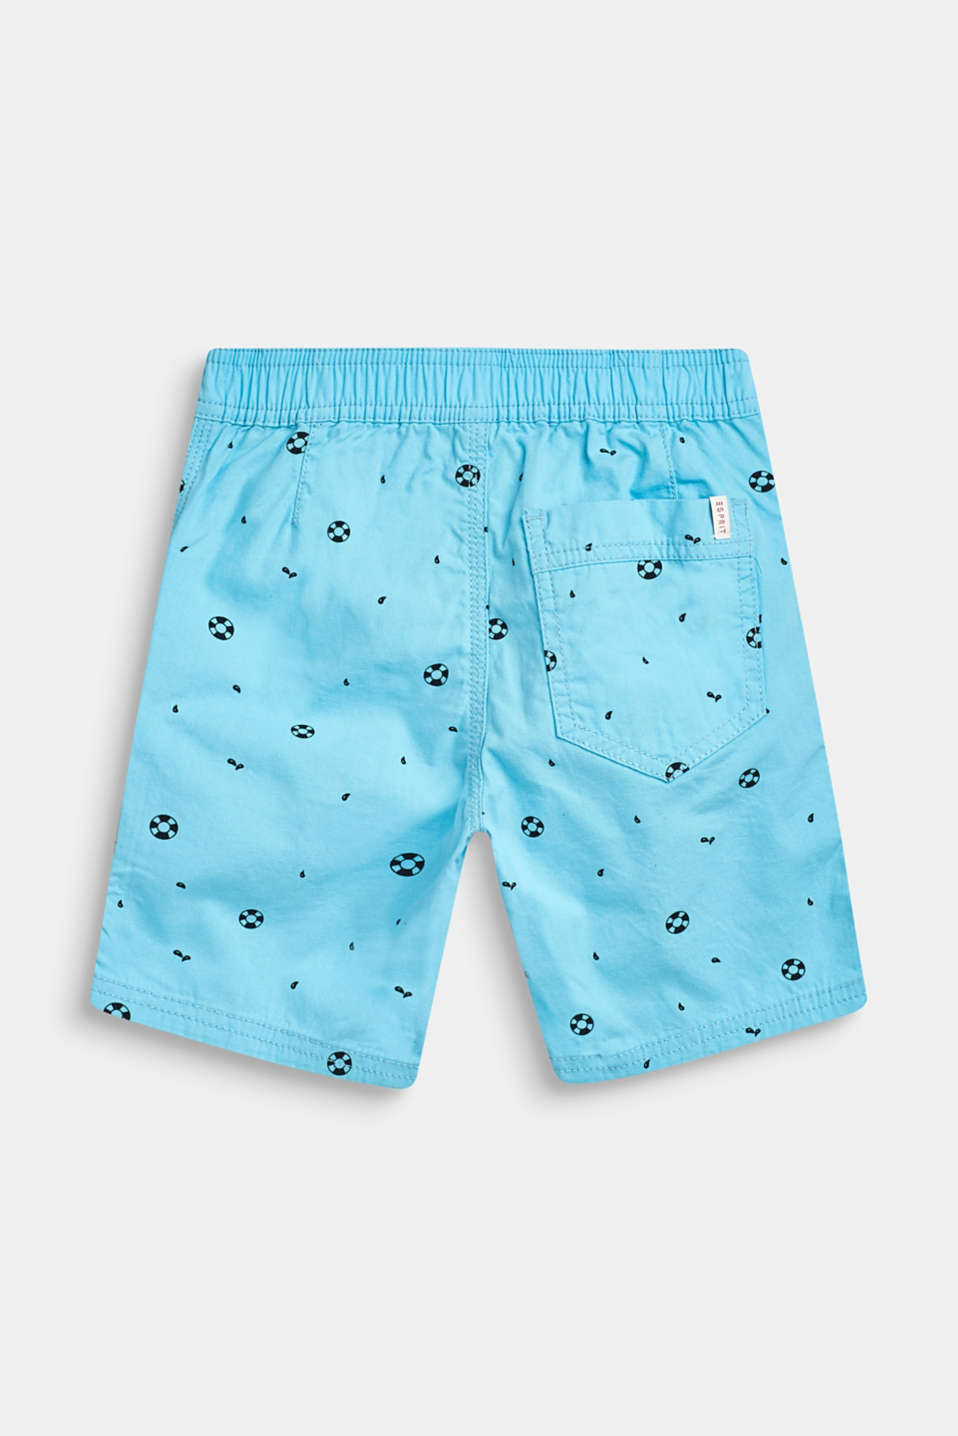 Nautical print Bermudas, 100% cotton, AQUARIUS, detail image number 1